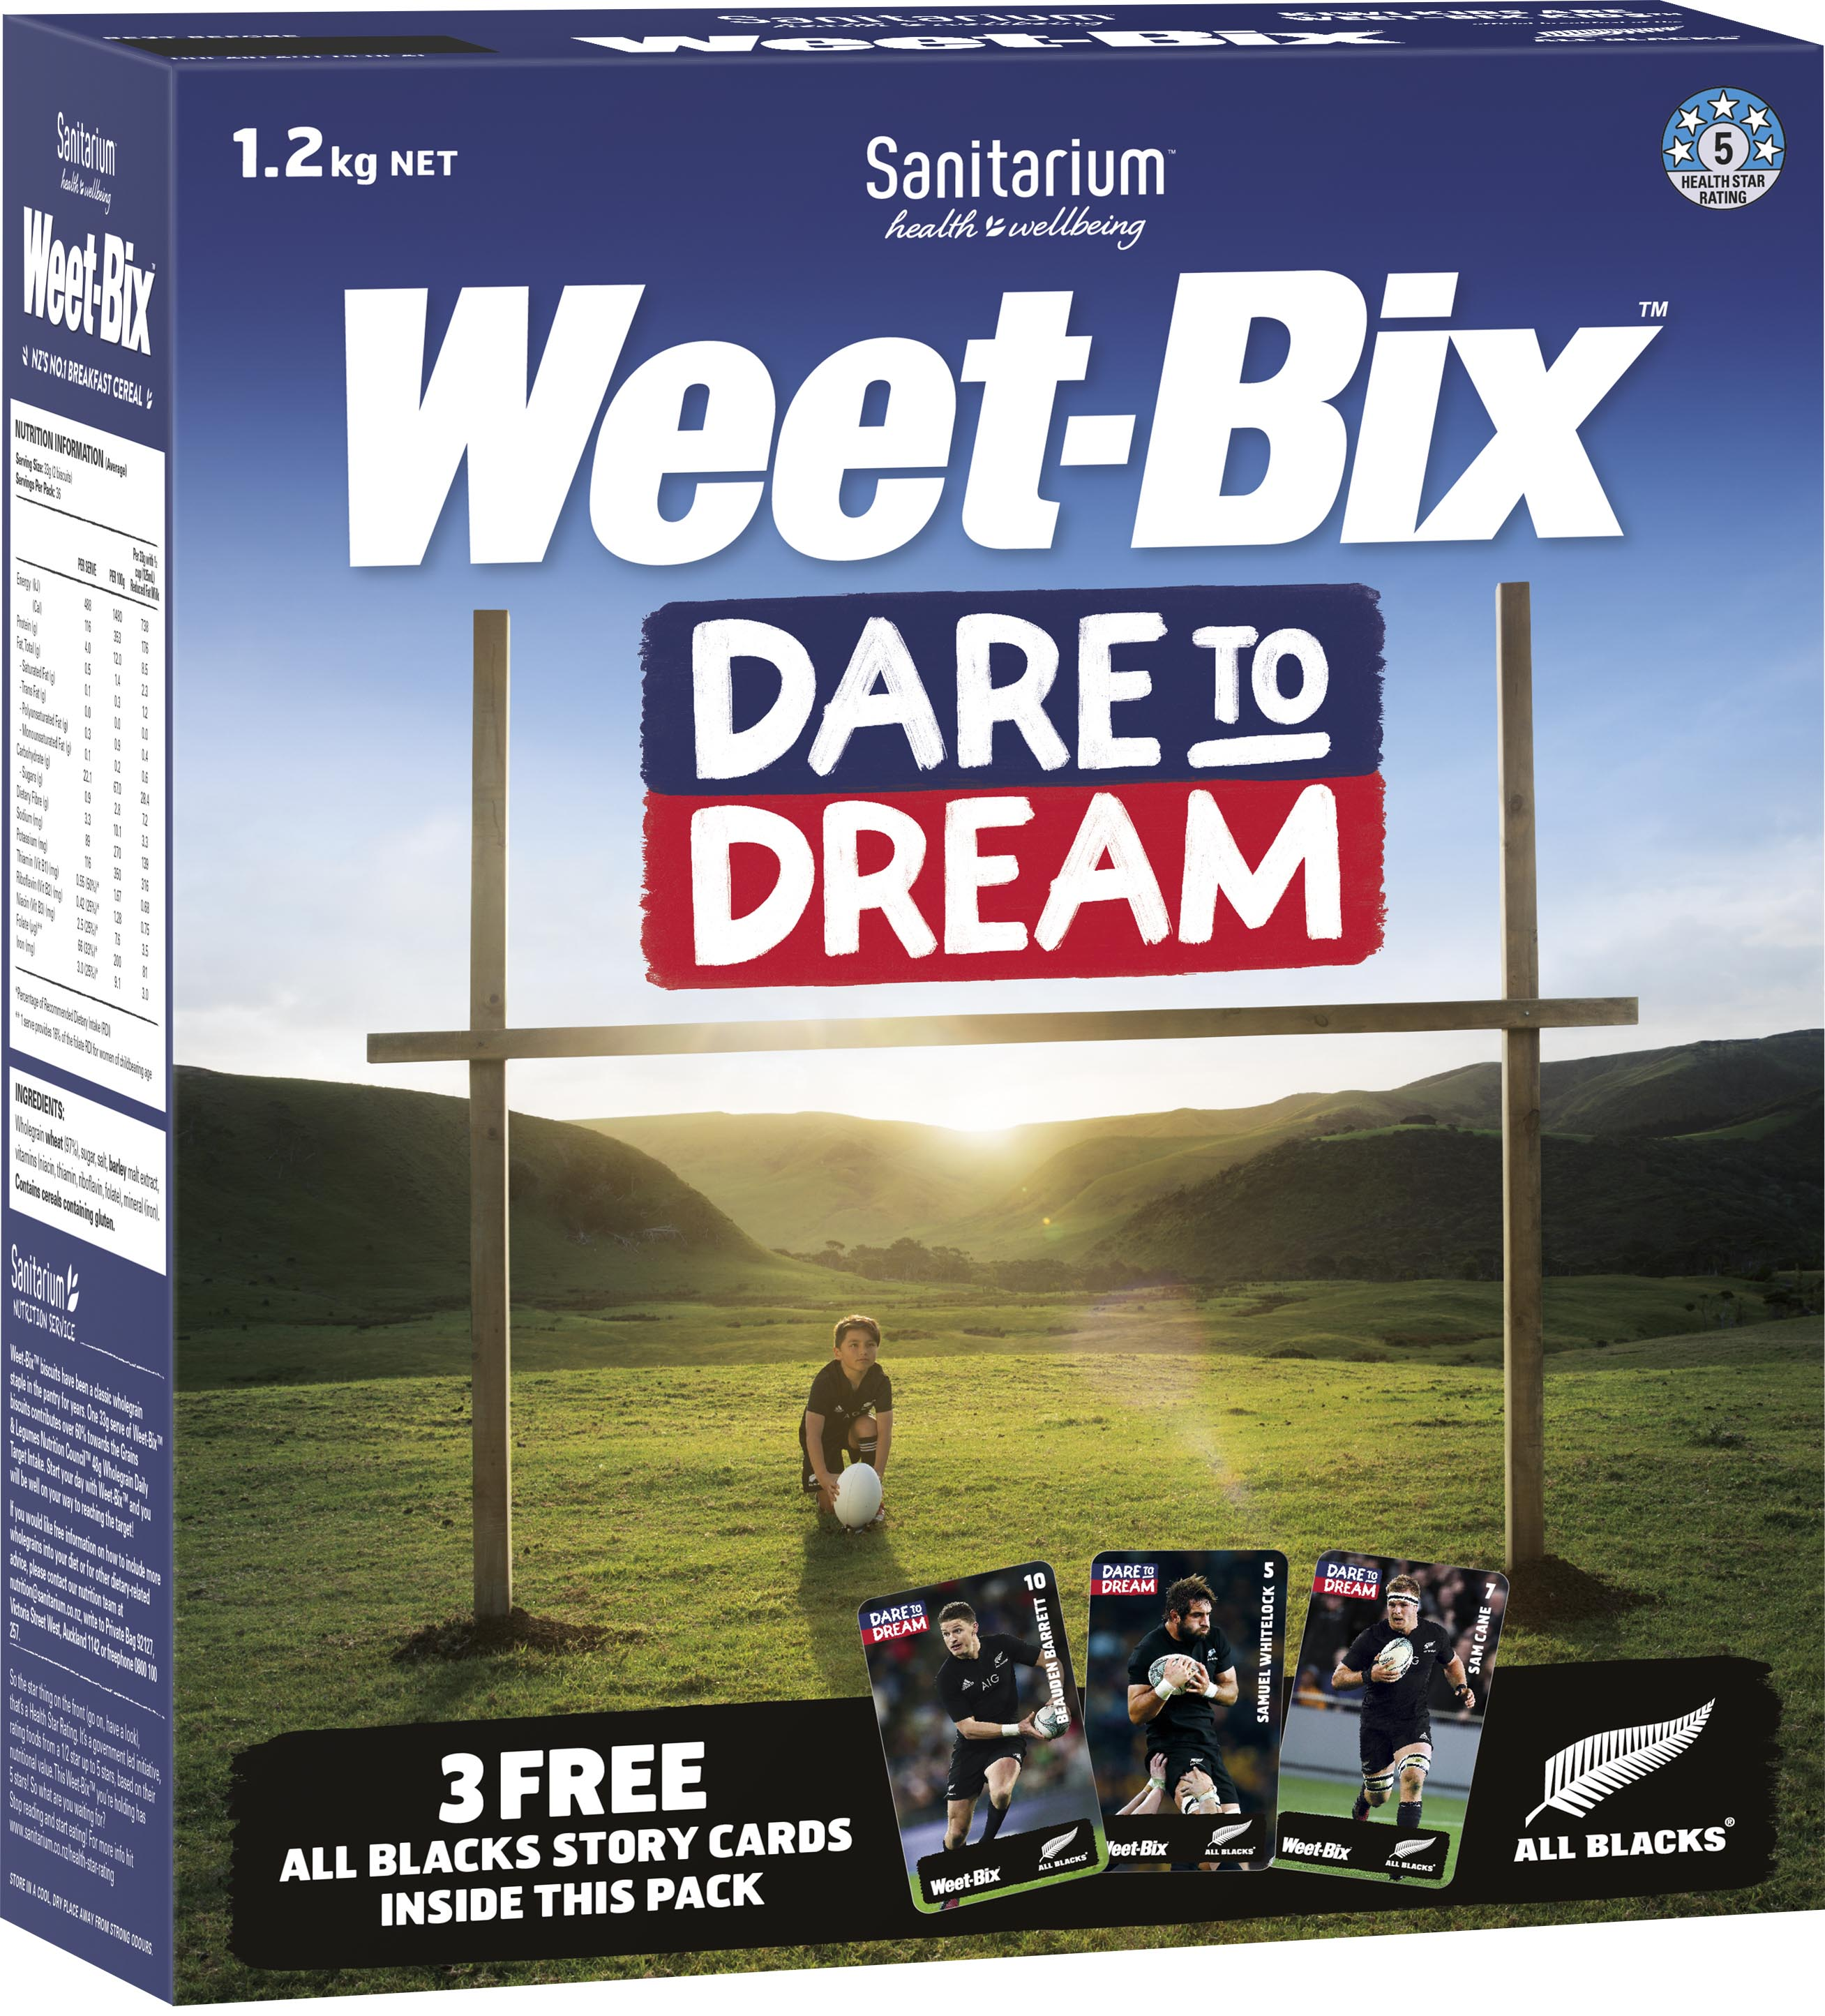 SAN0073 Weet-Bix All Blacks Pack Render 1.2kg 2